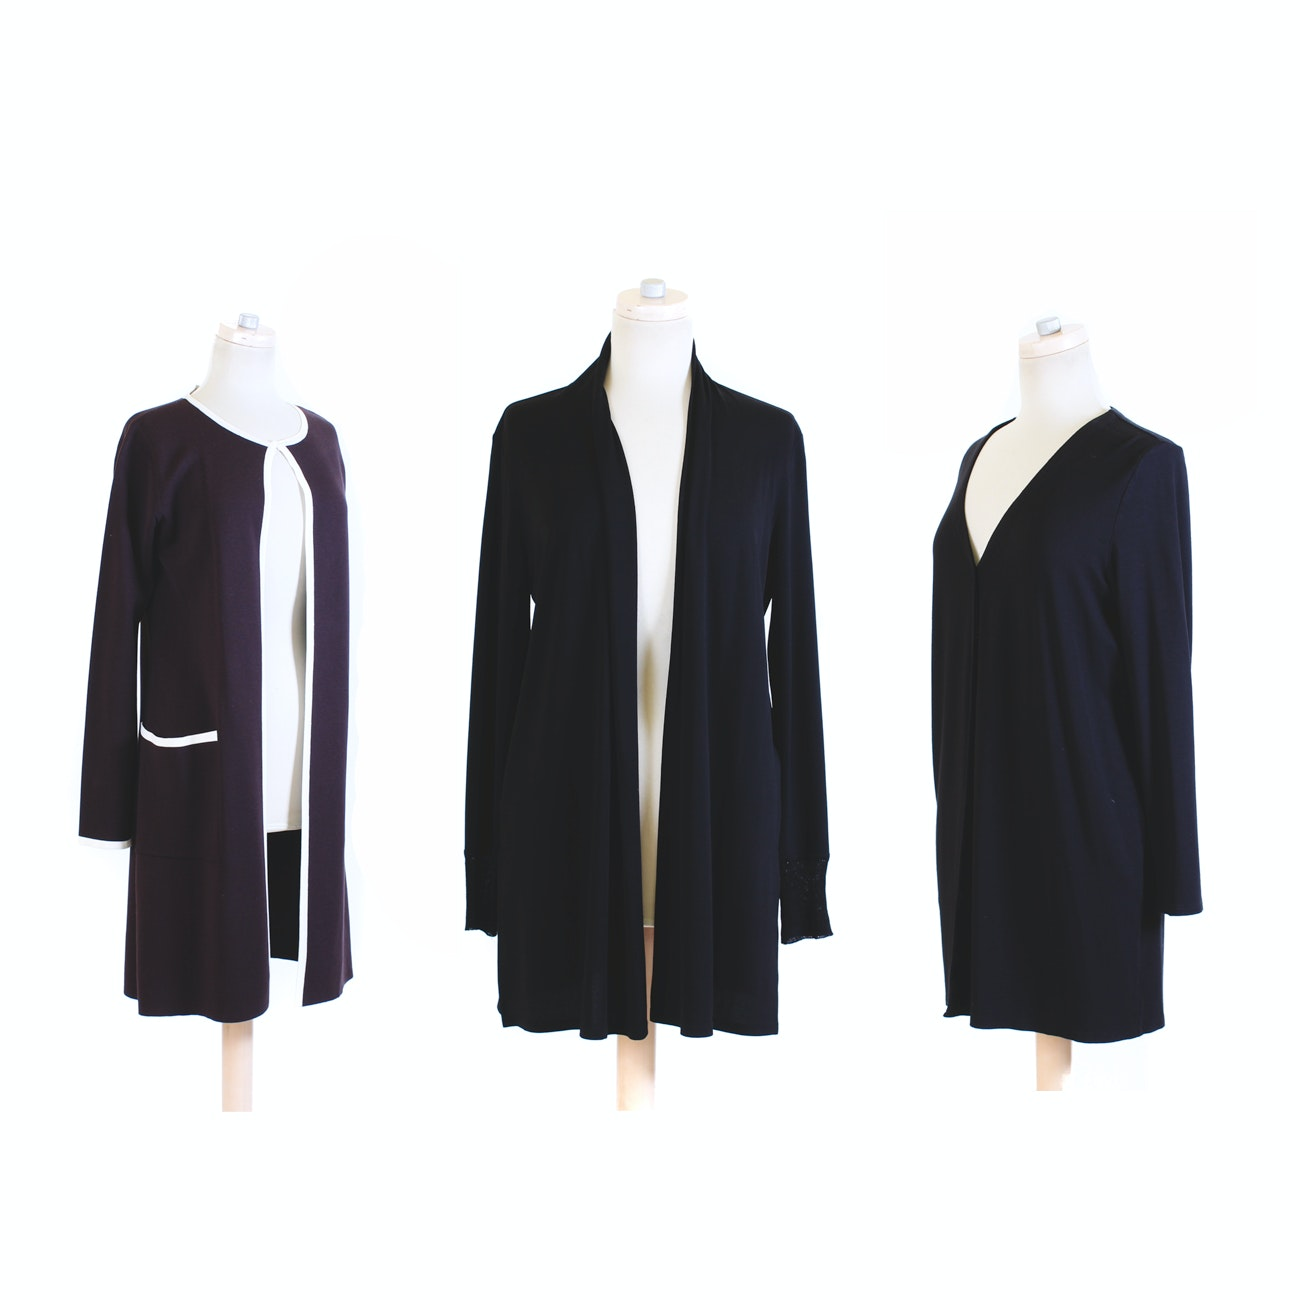 J. Jill, Max Mara and Eileen Fisher Cardigans and Jacket